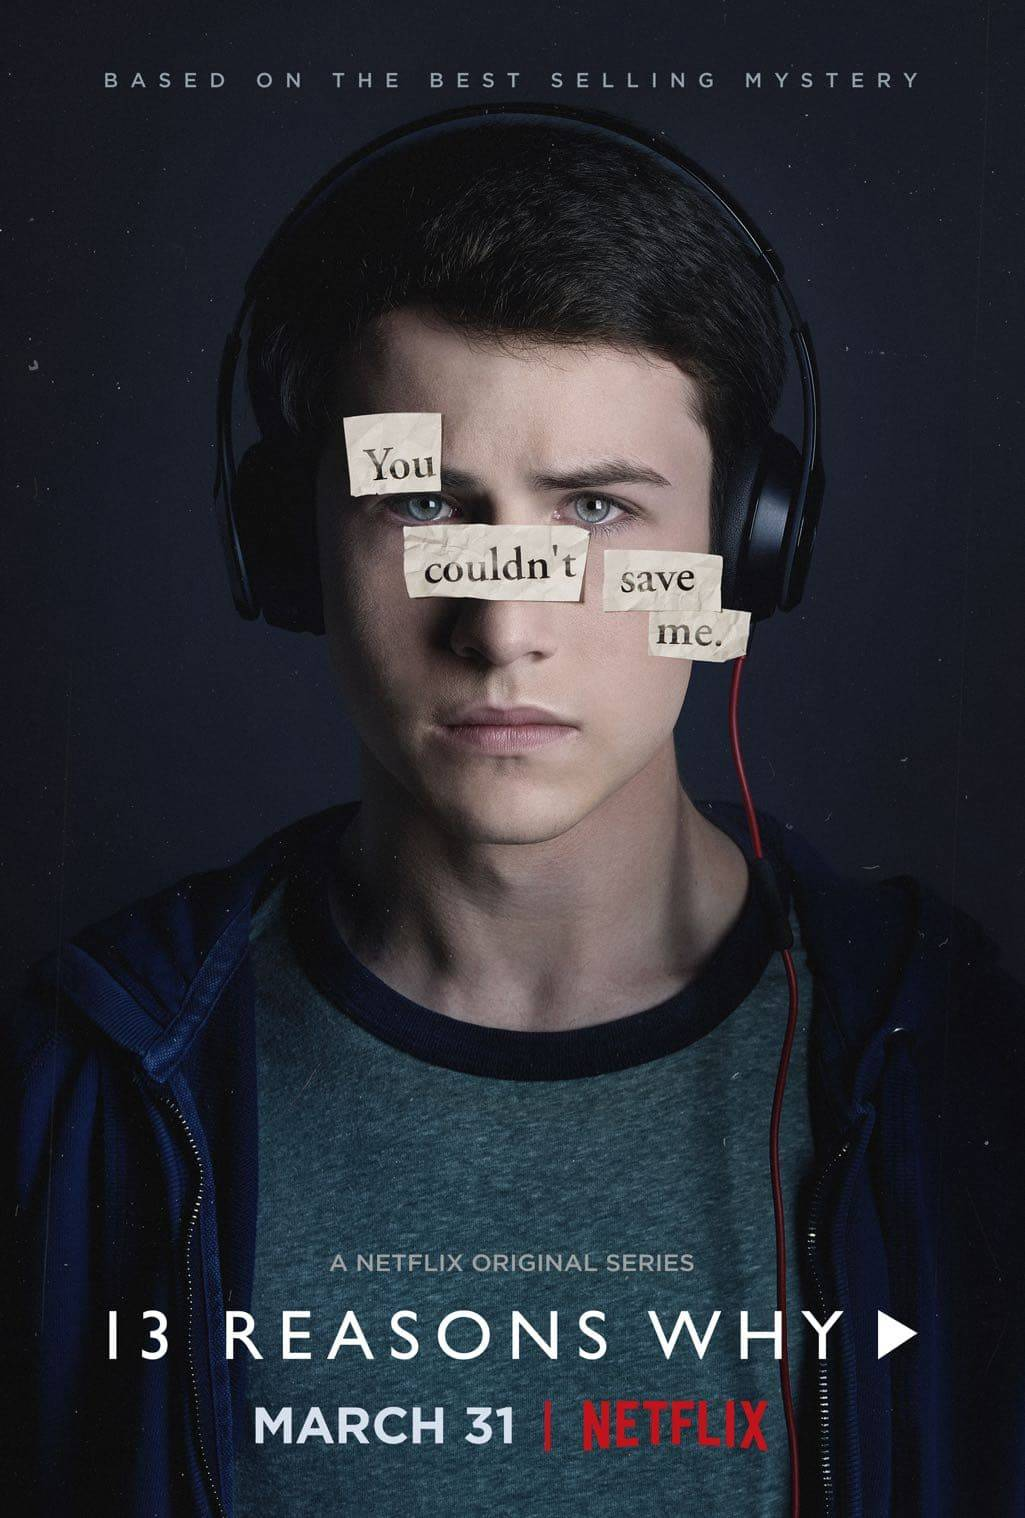 Image result for 13 reasons why Mr. porter poster